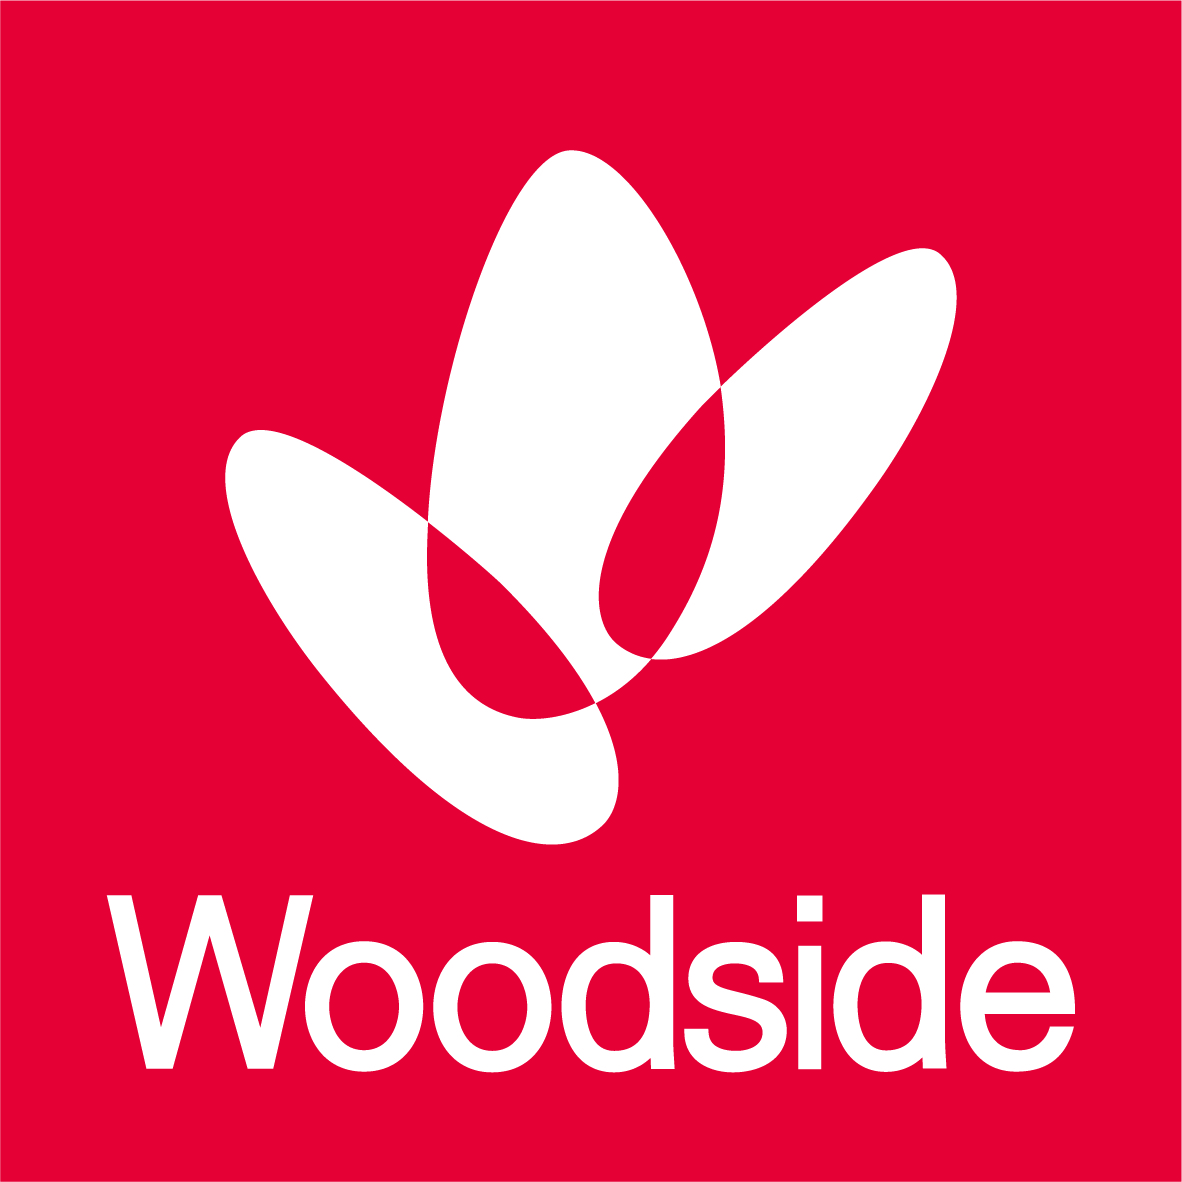 Woodside Energy